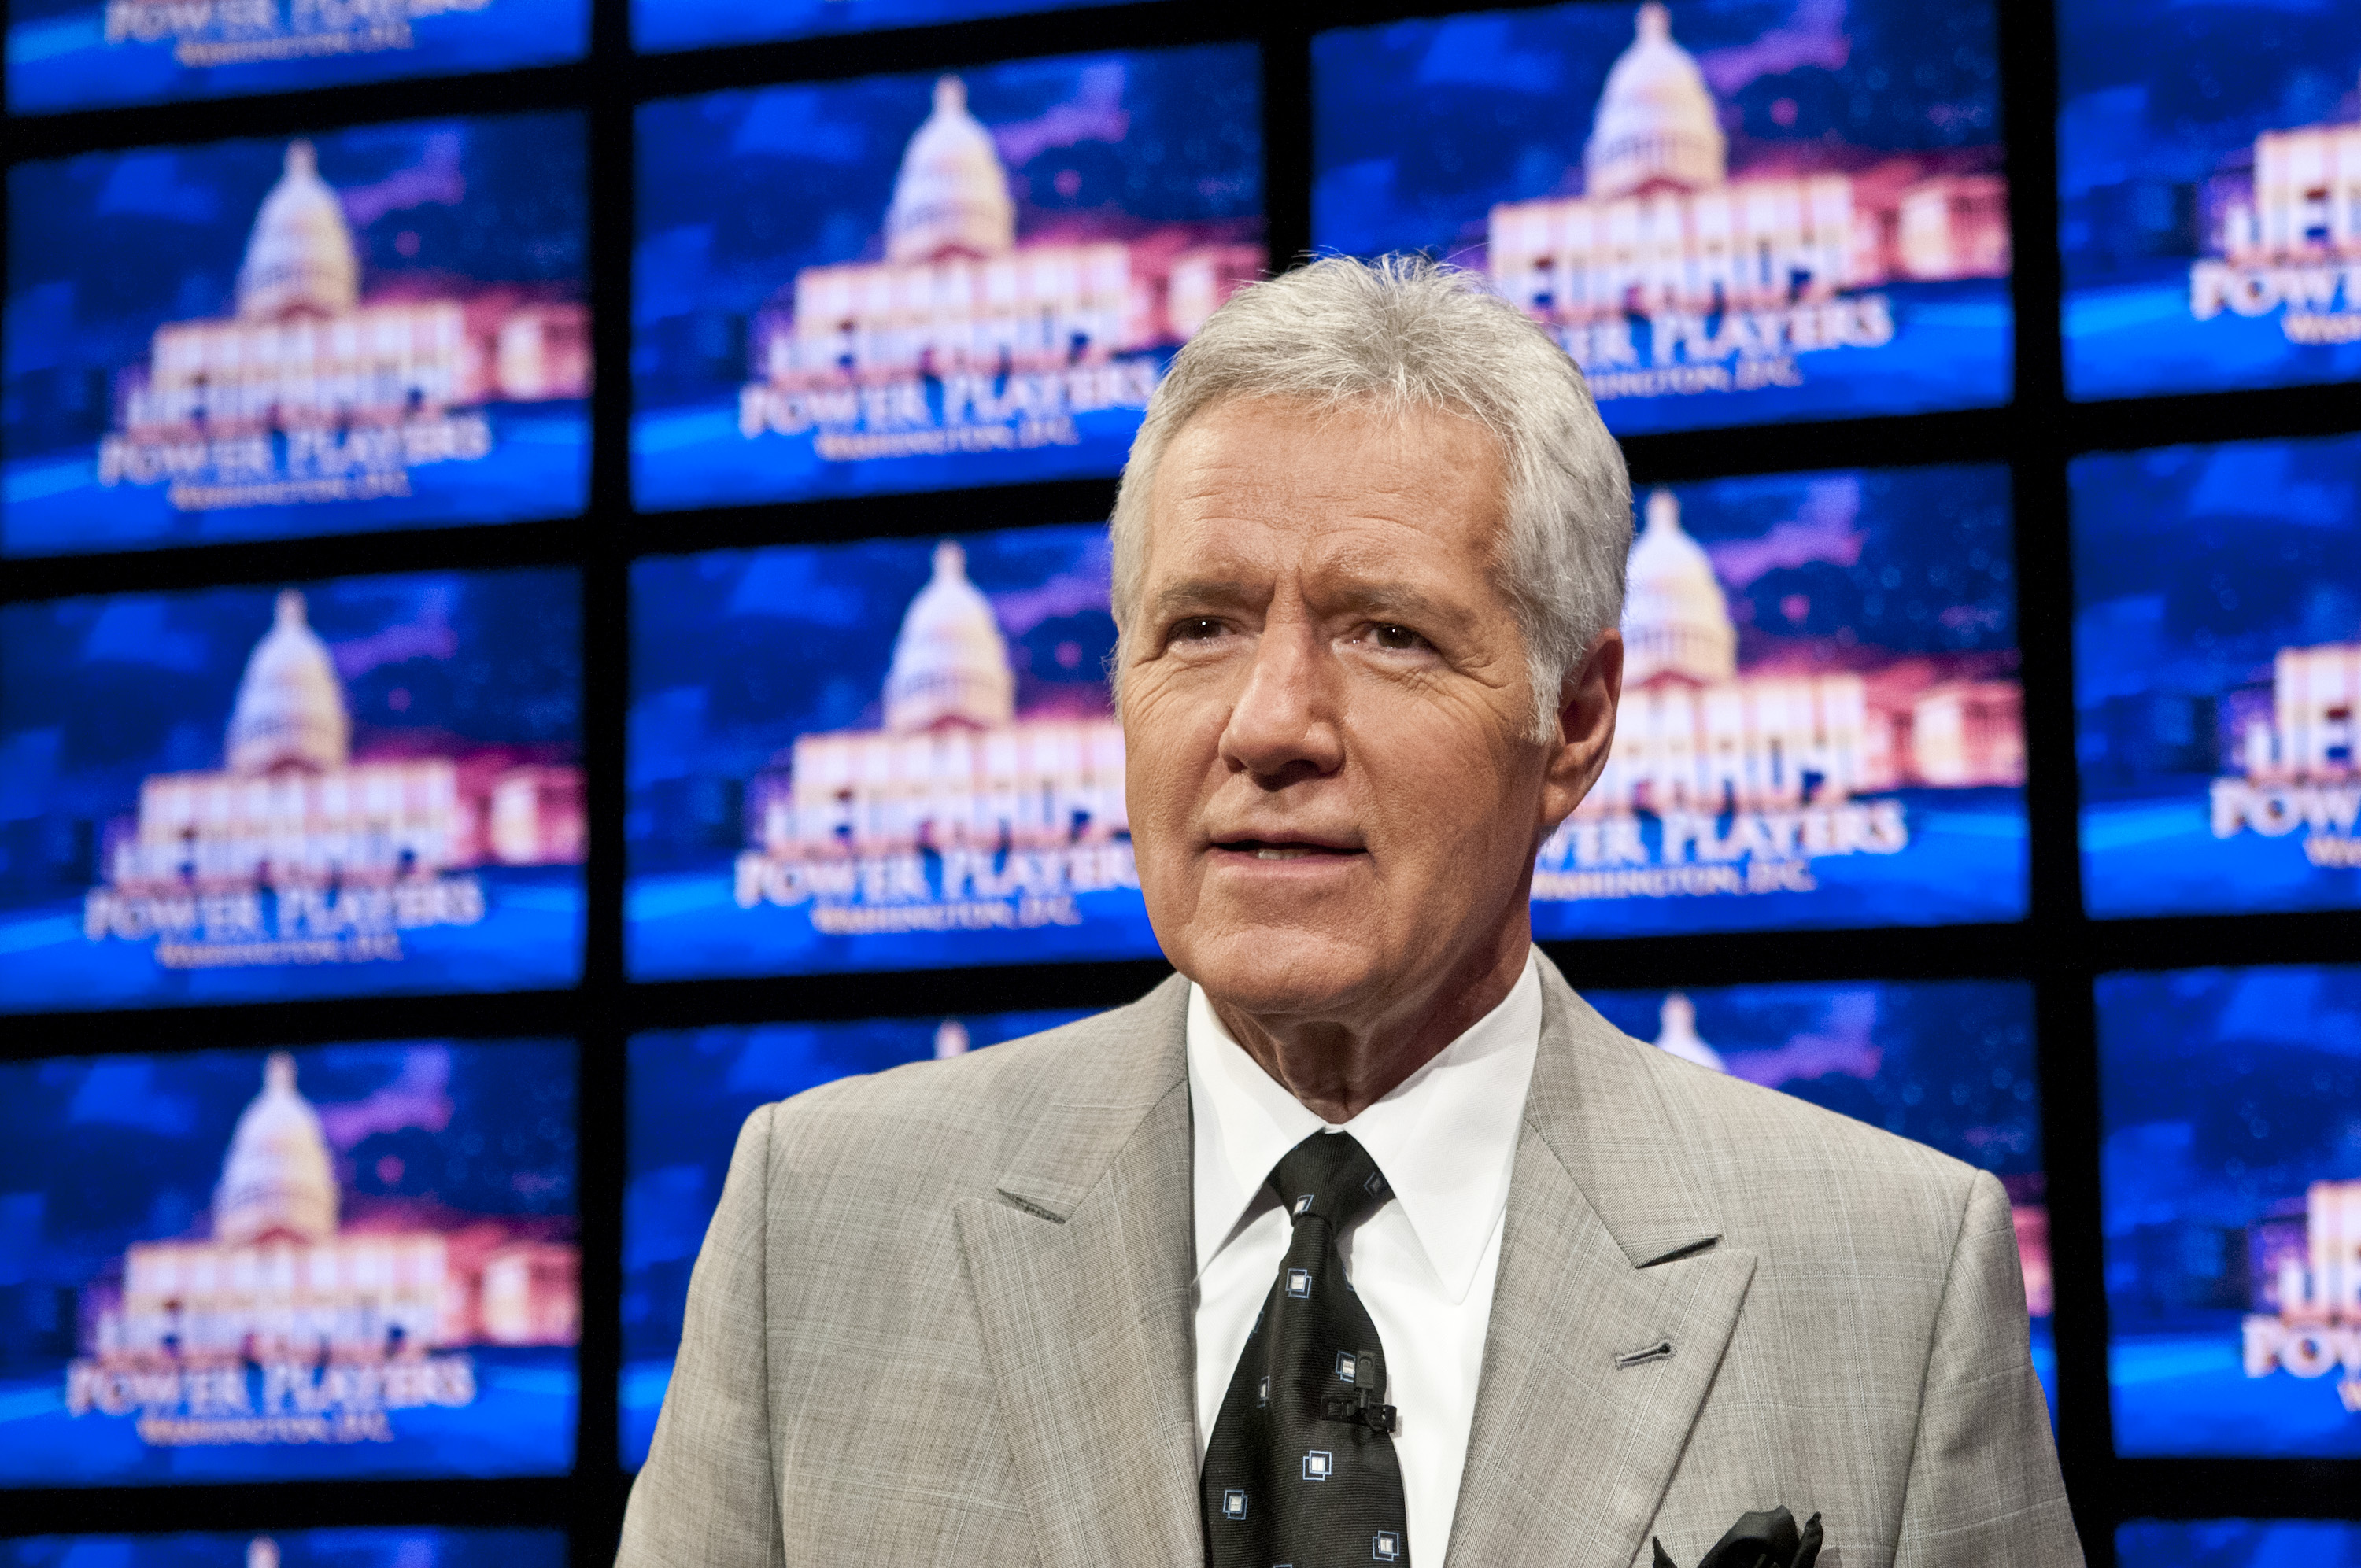 Alex Trebek during a rehearsal before a taping of Jeopardy! Power Players Week at on April 21, 2012 in Washington, DC.